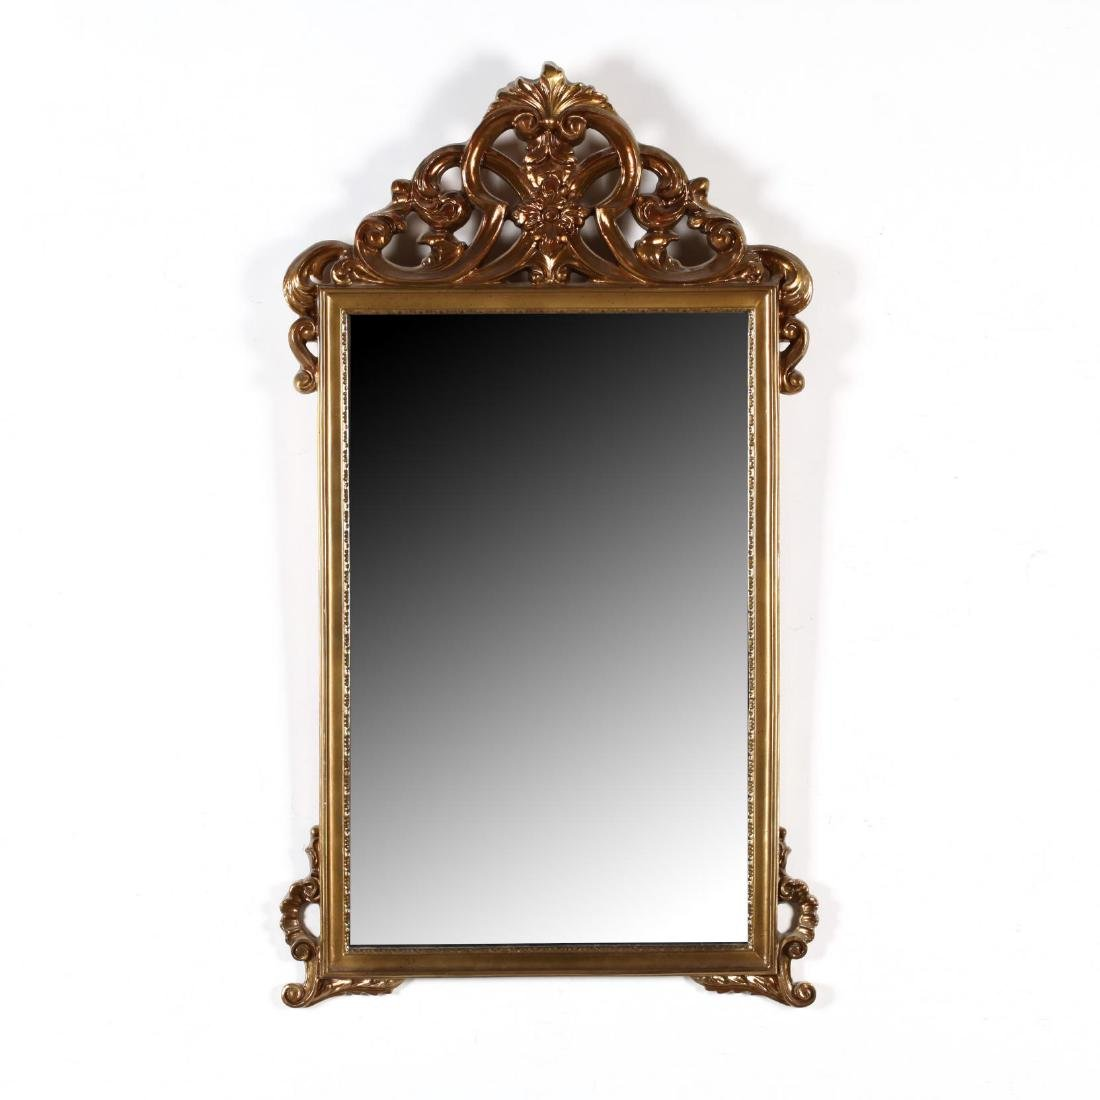 A Vintage Gilt Wall Mirror